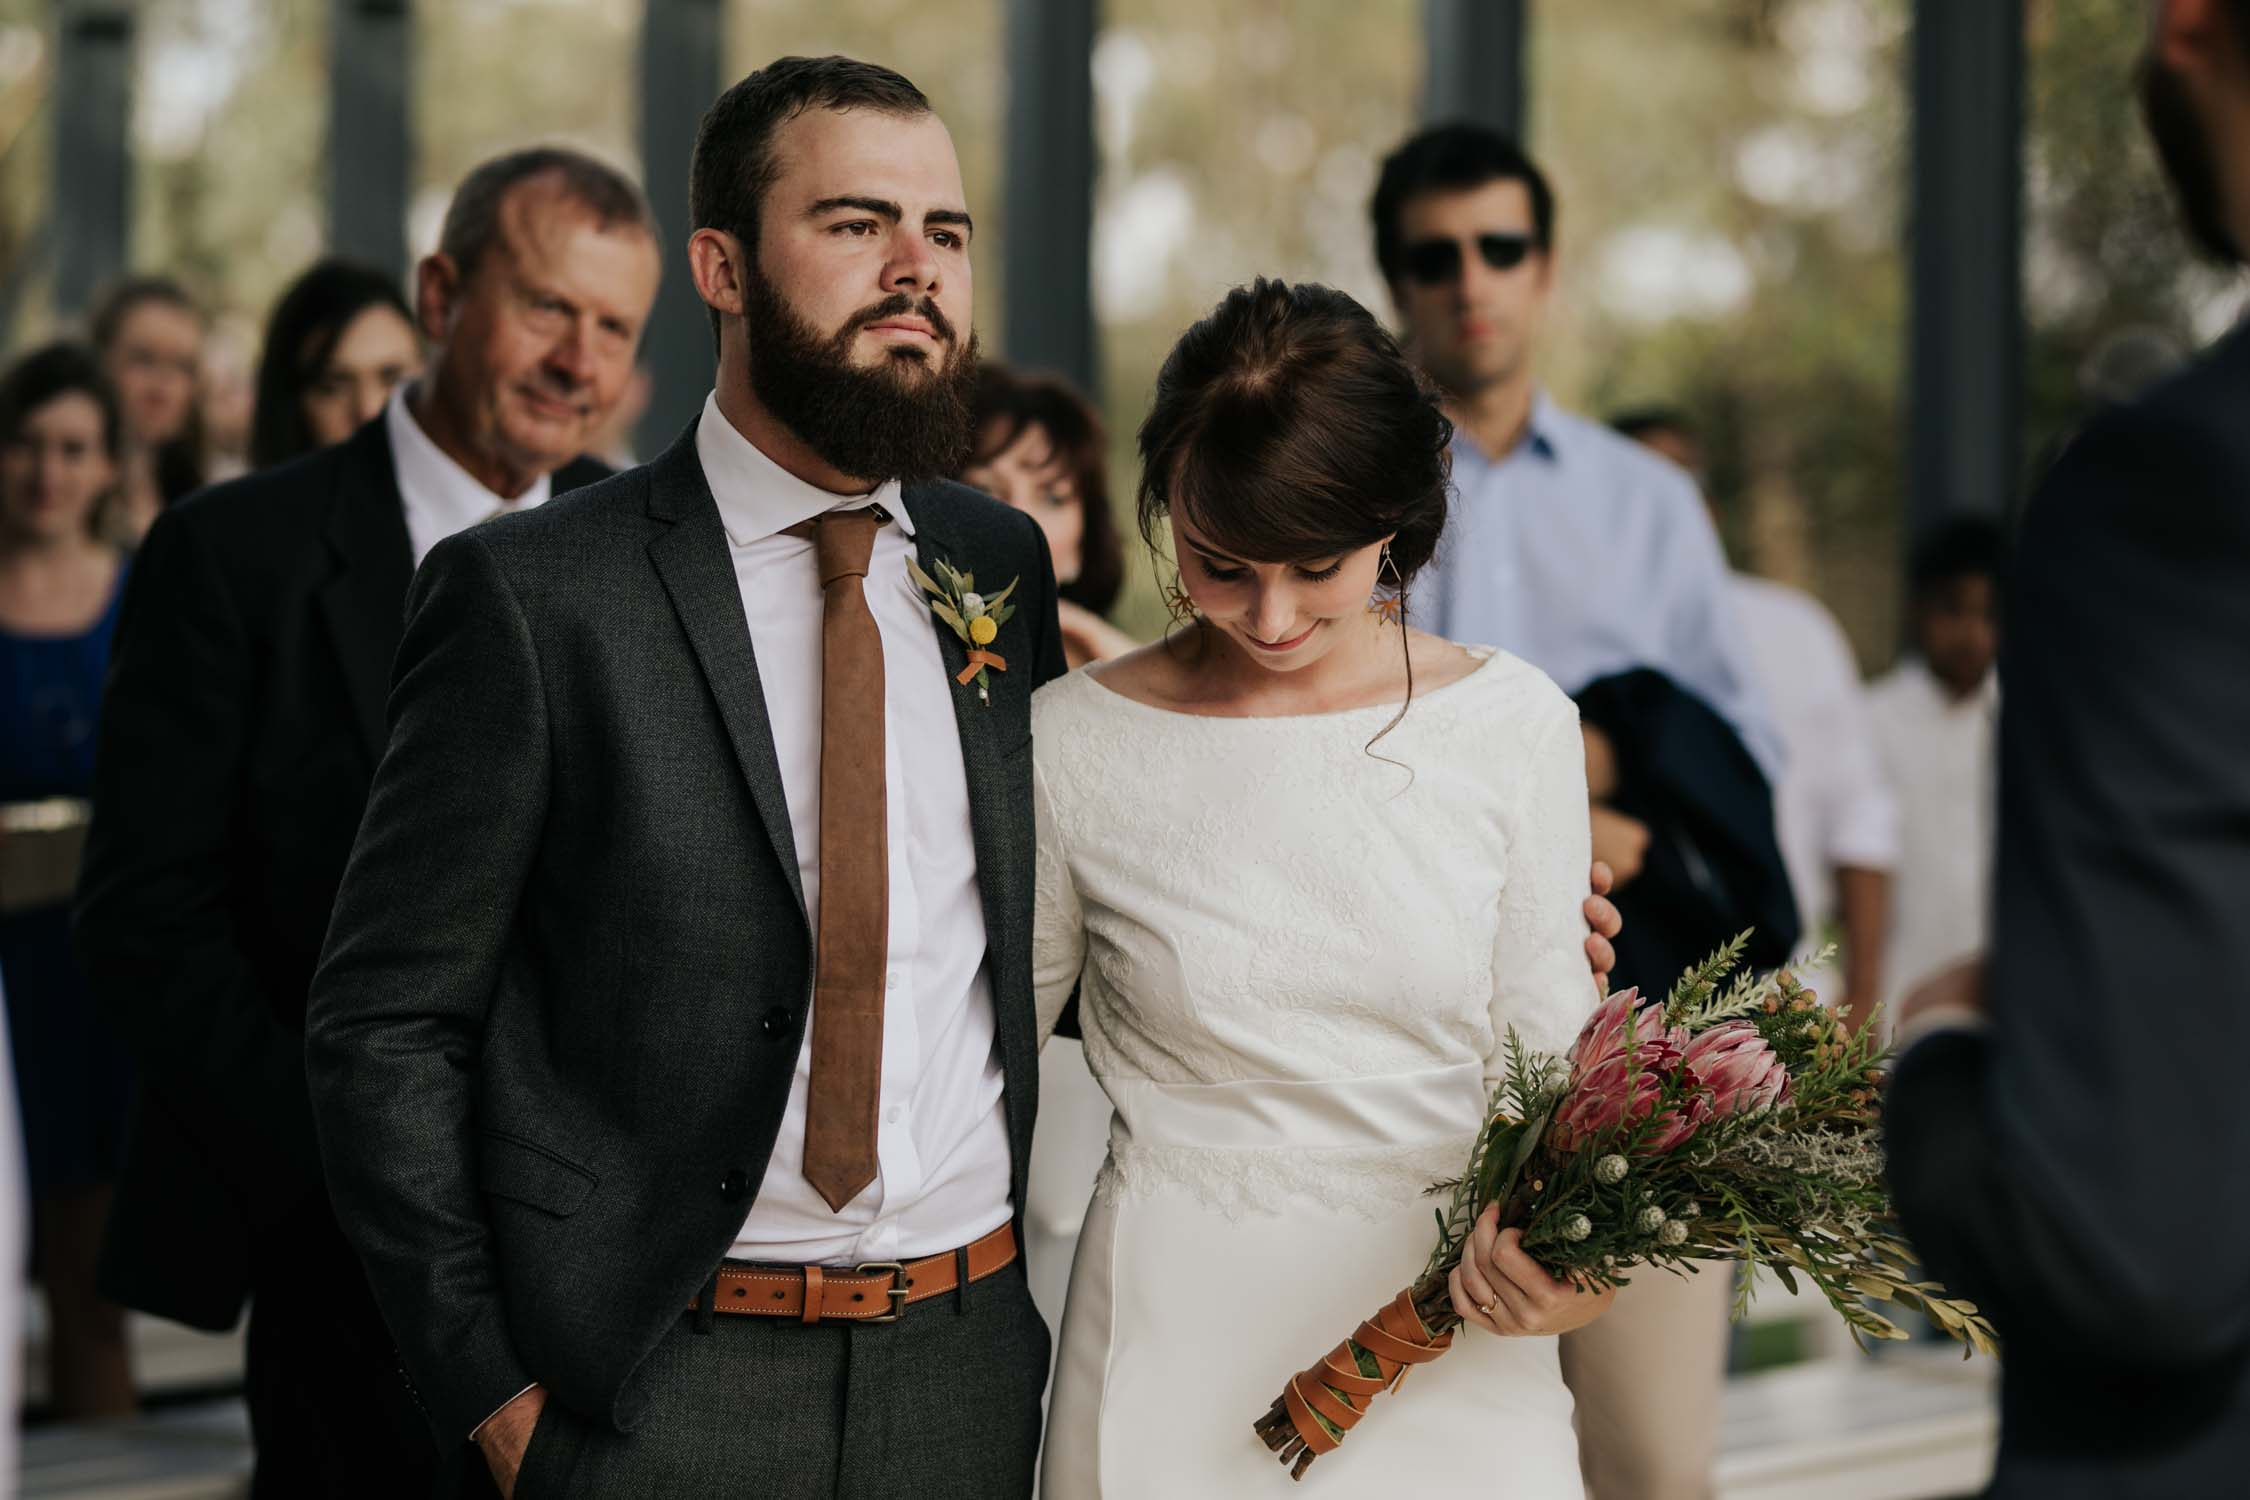 Hipster couple on their wedding day